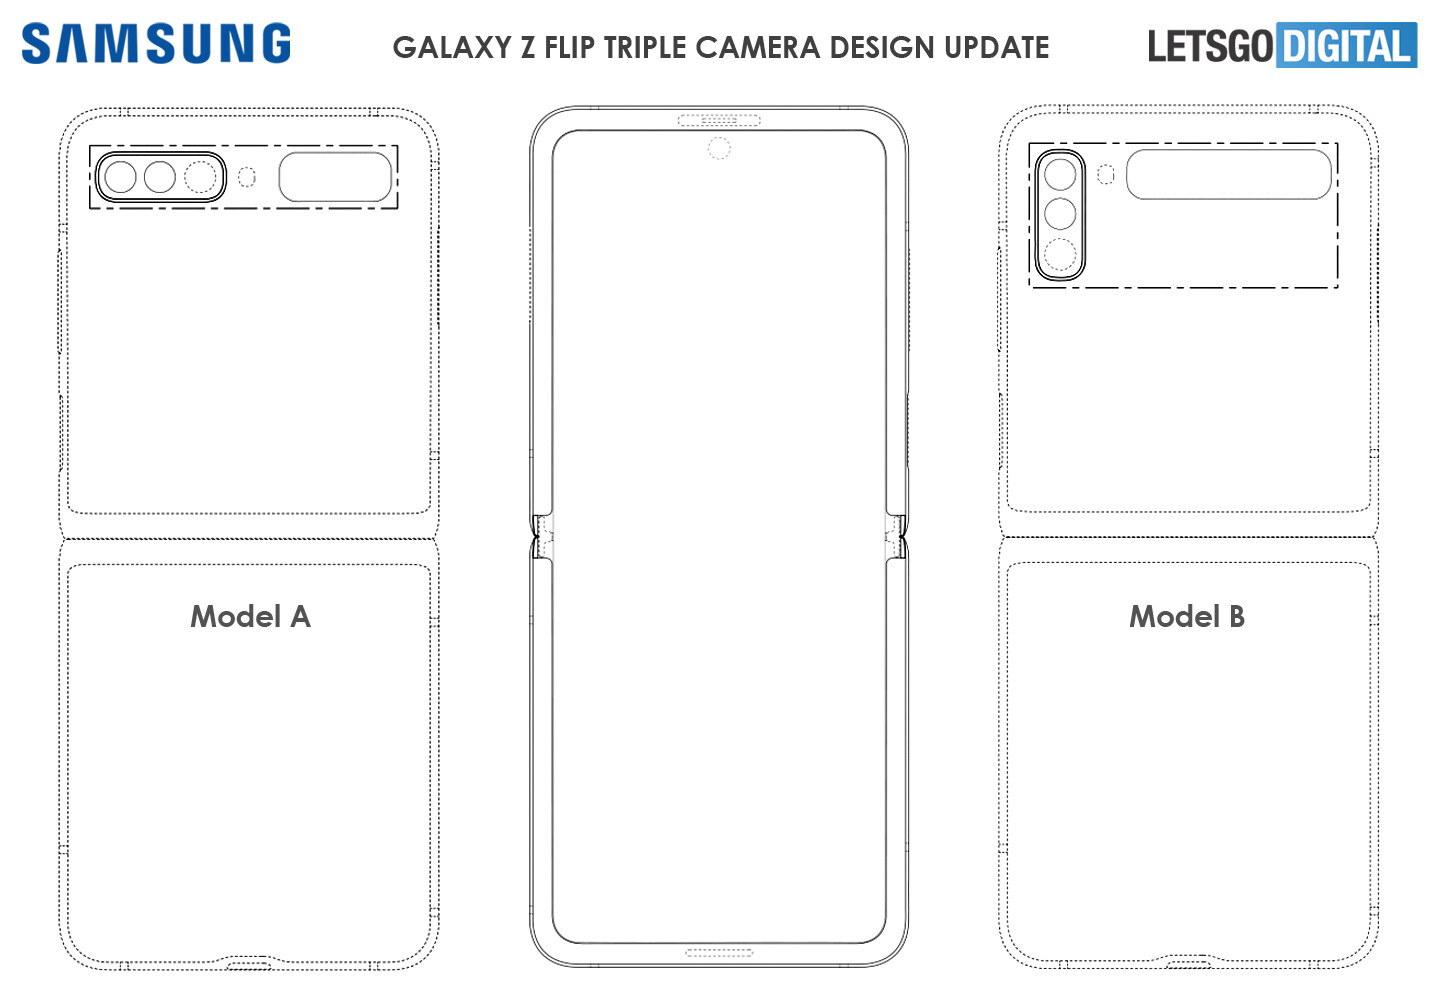 Alleged Galaxy Z Flip 2 design sketches - Galaxy Z Flip 2 will likely have a triple camera system, larger front display